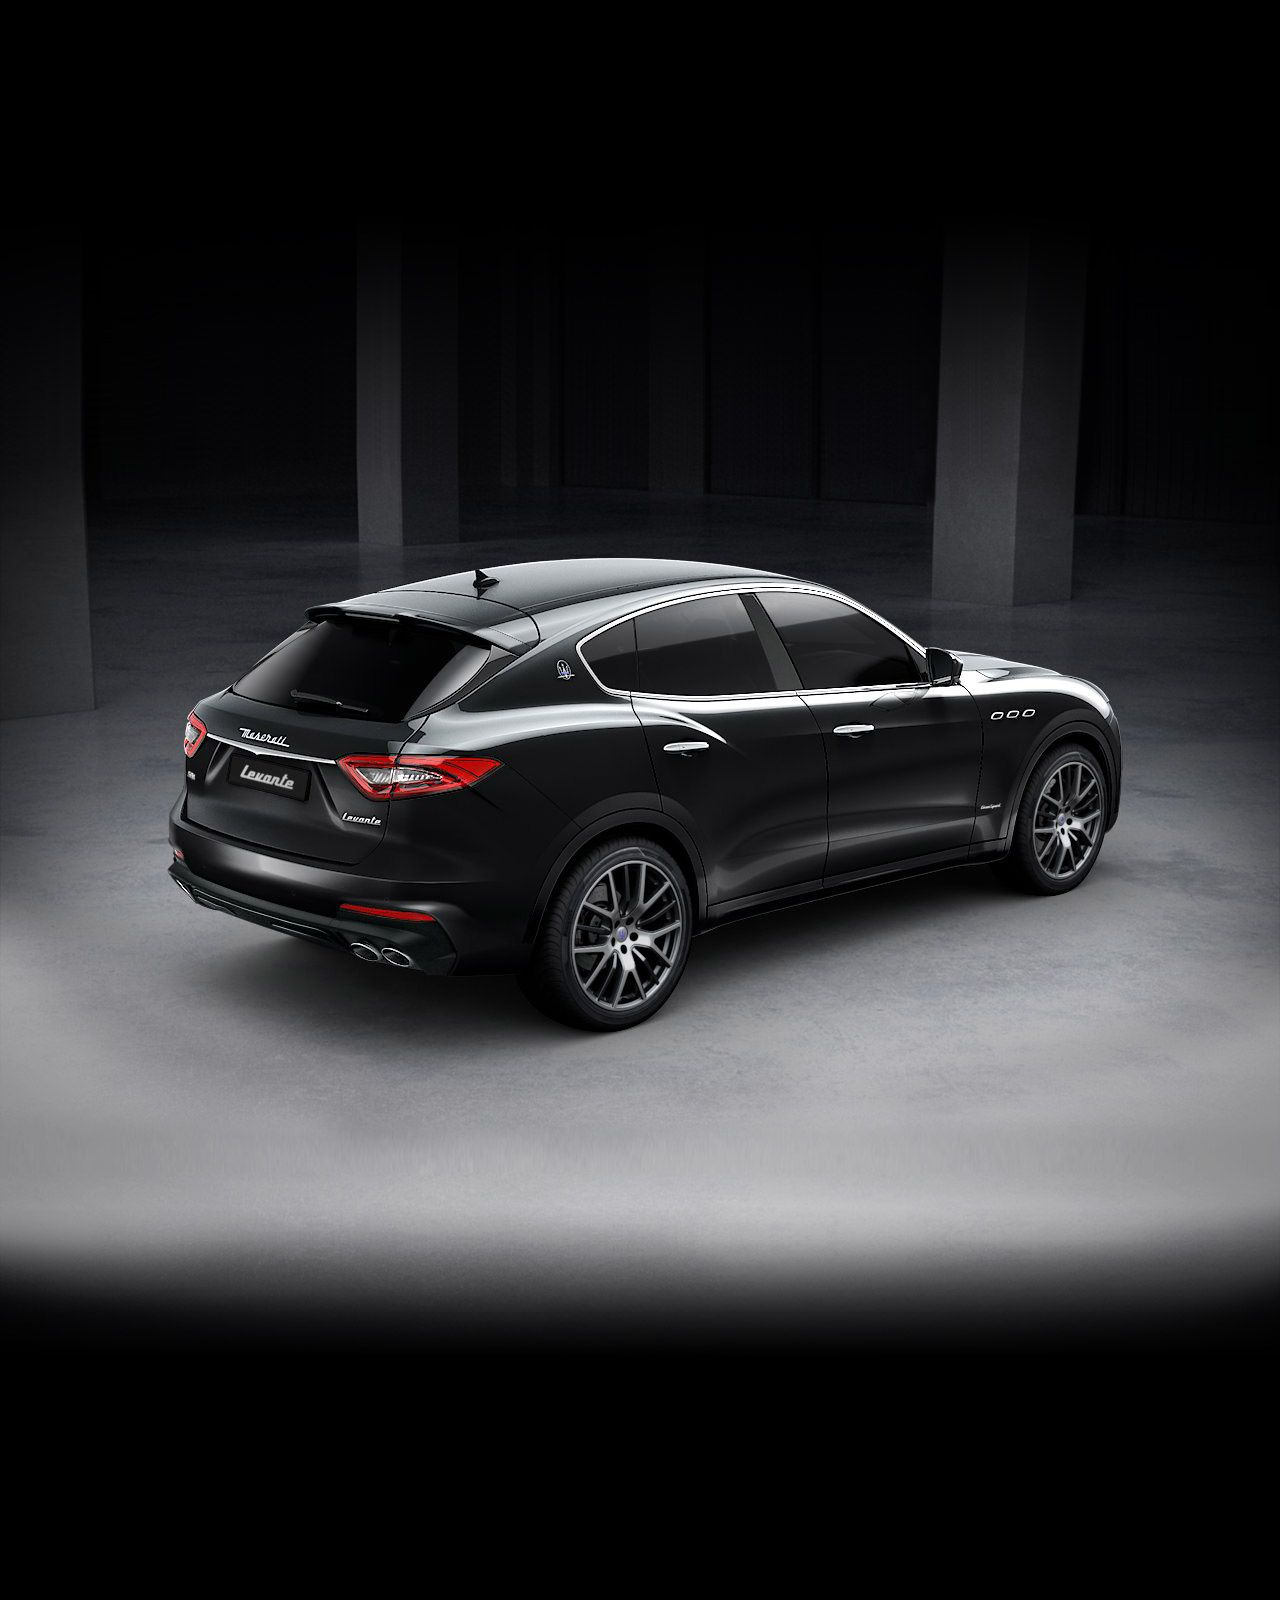 Maserati Levante GranSport exterior – back view